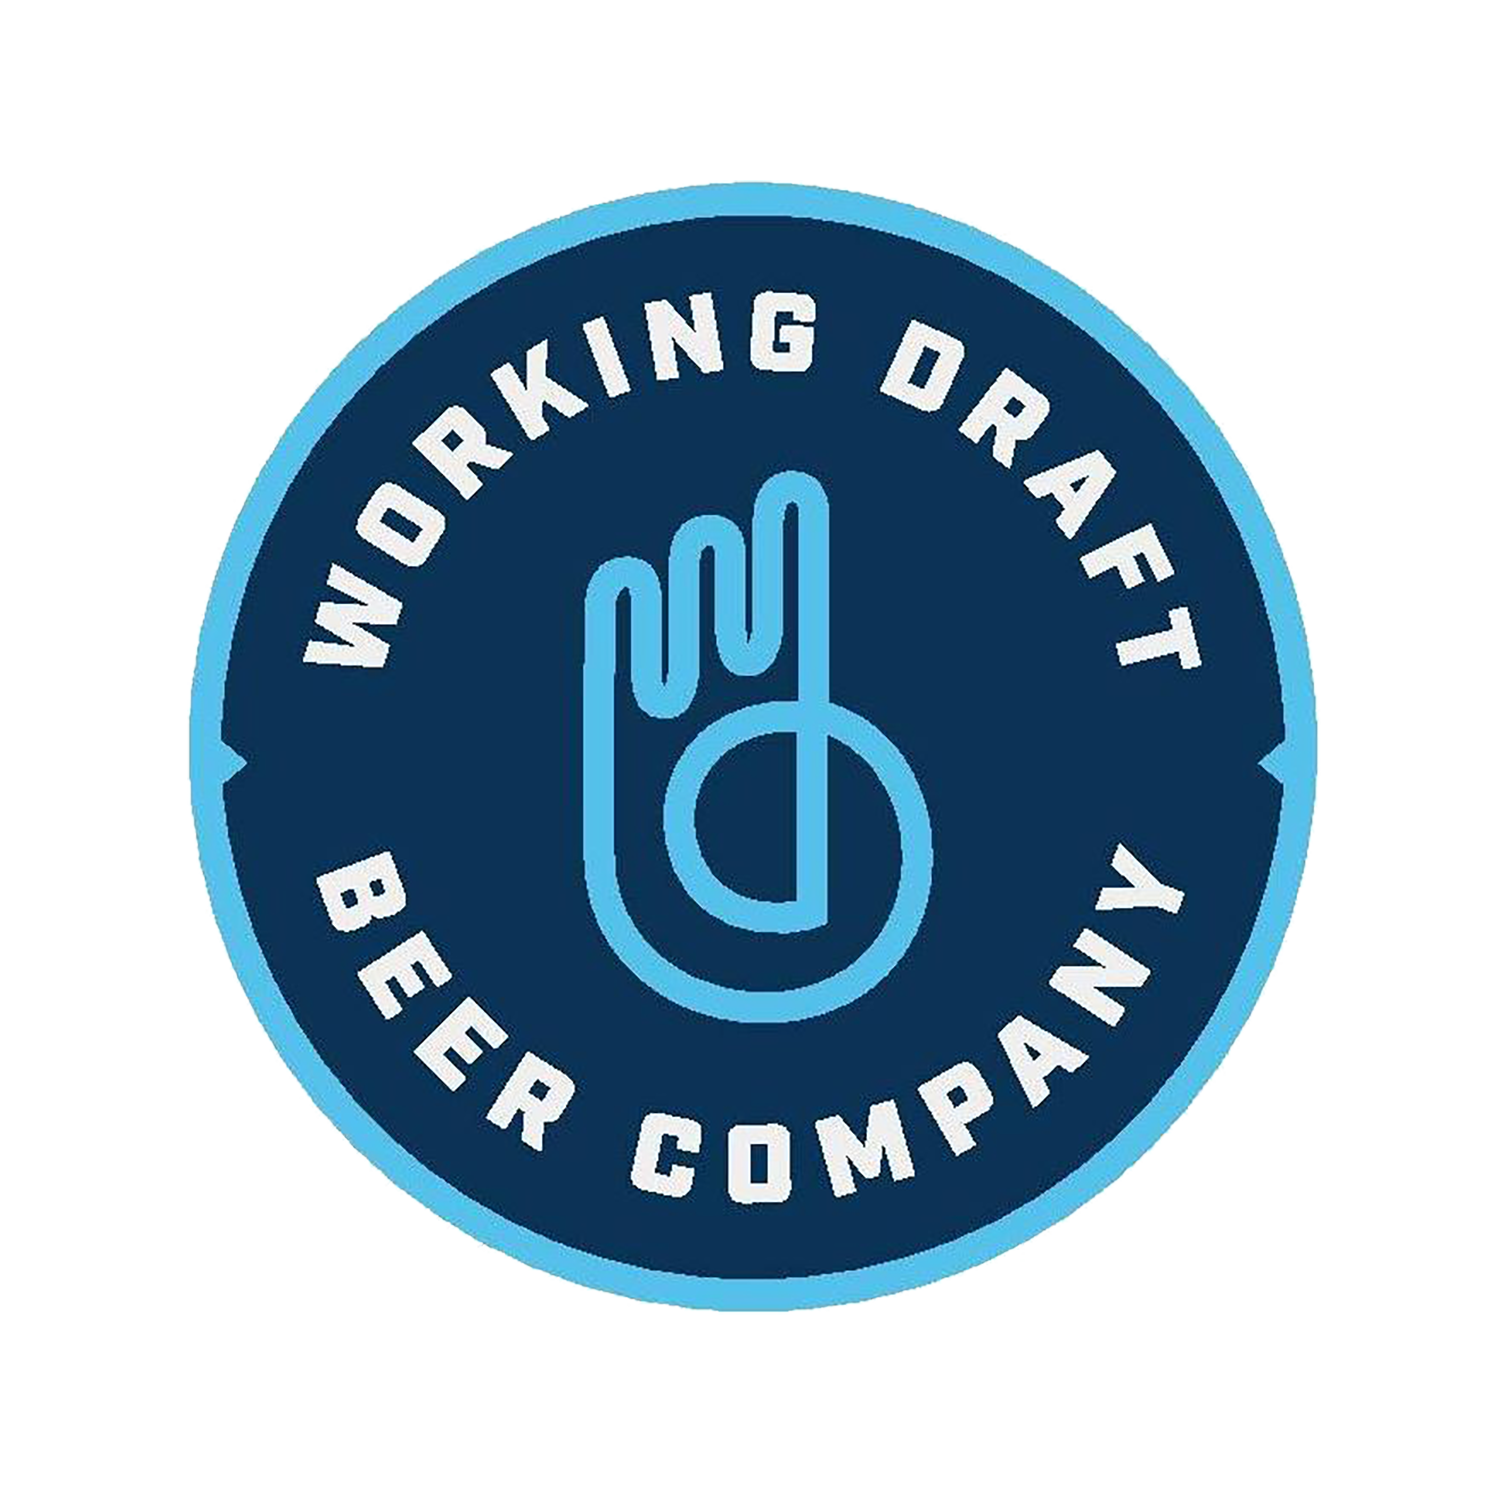 Working Draft Beer Co.png